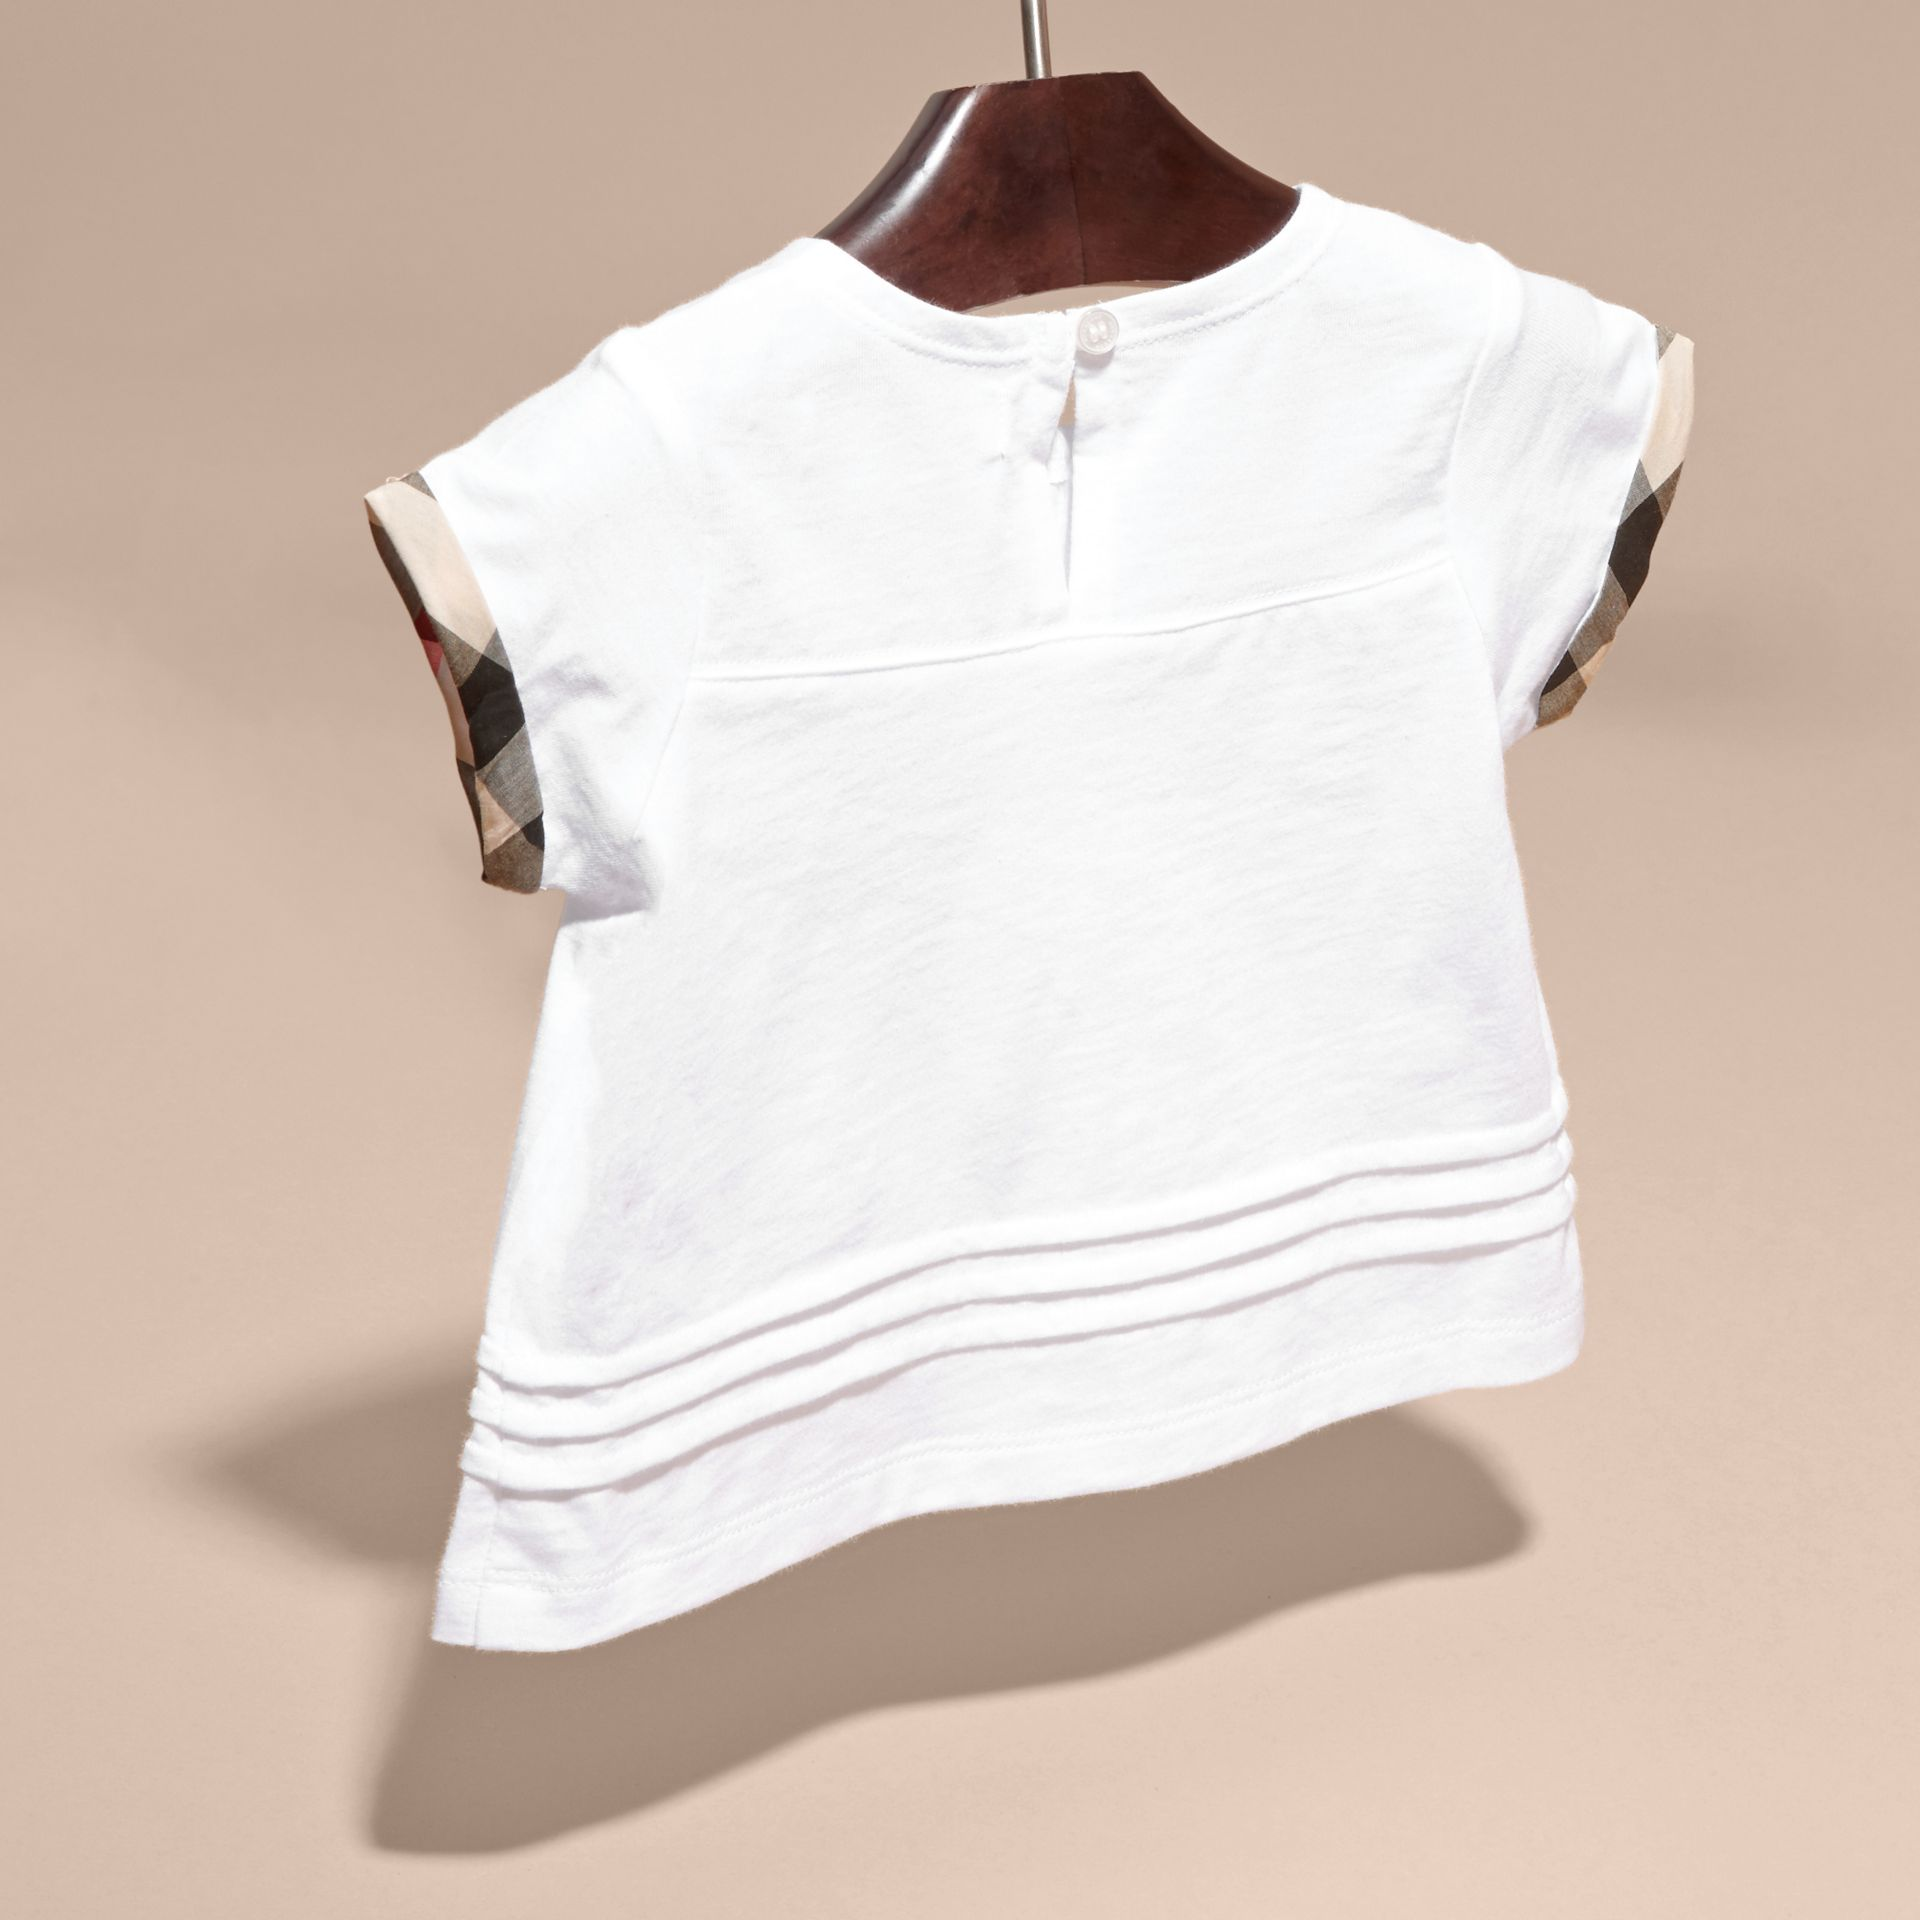 Pleat and Check Detail Cotton T-shirt in White | Burberry - gallery image 4